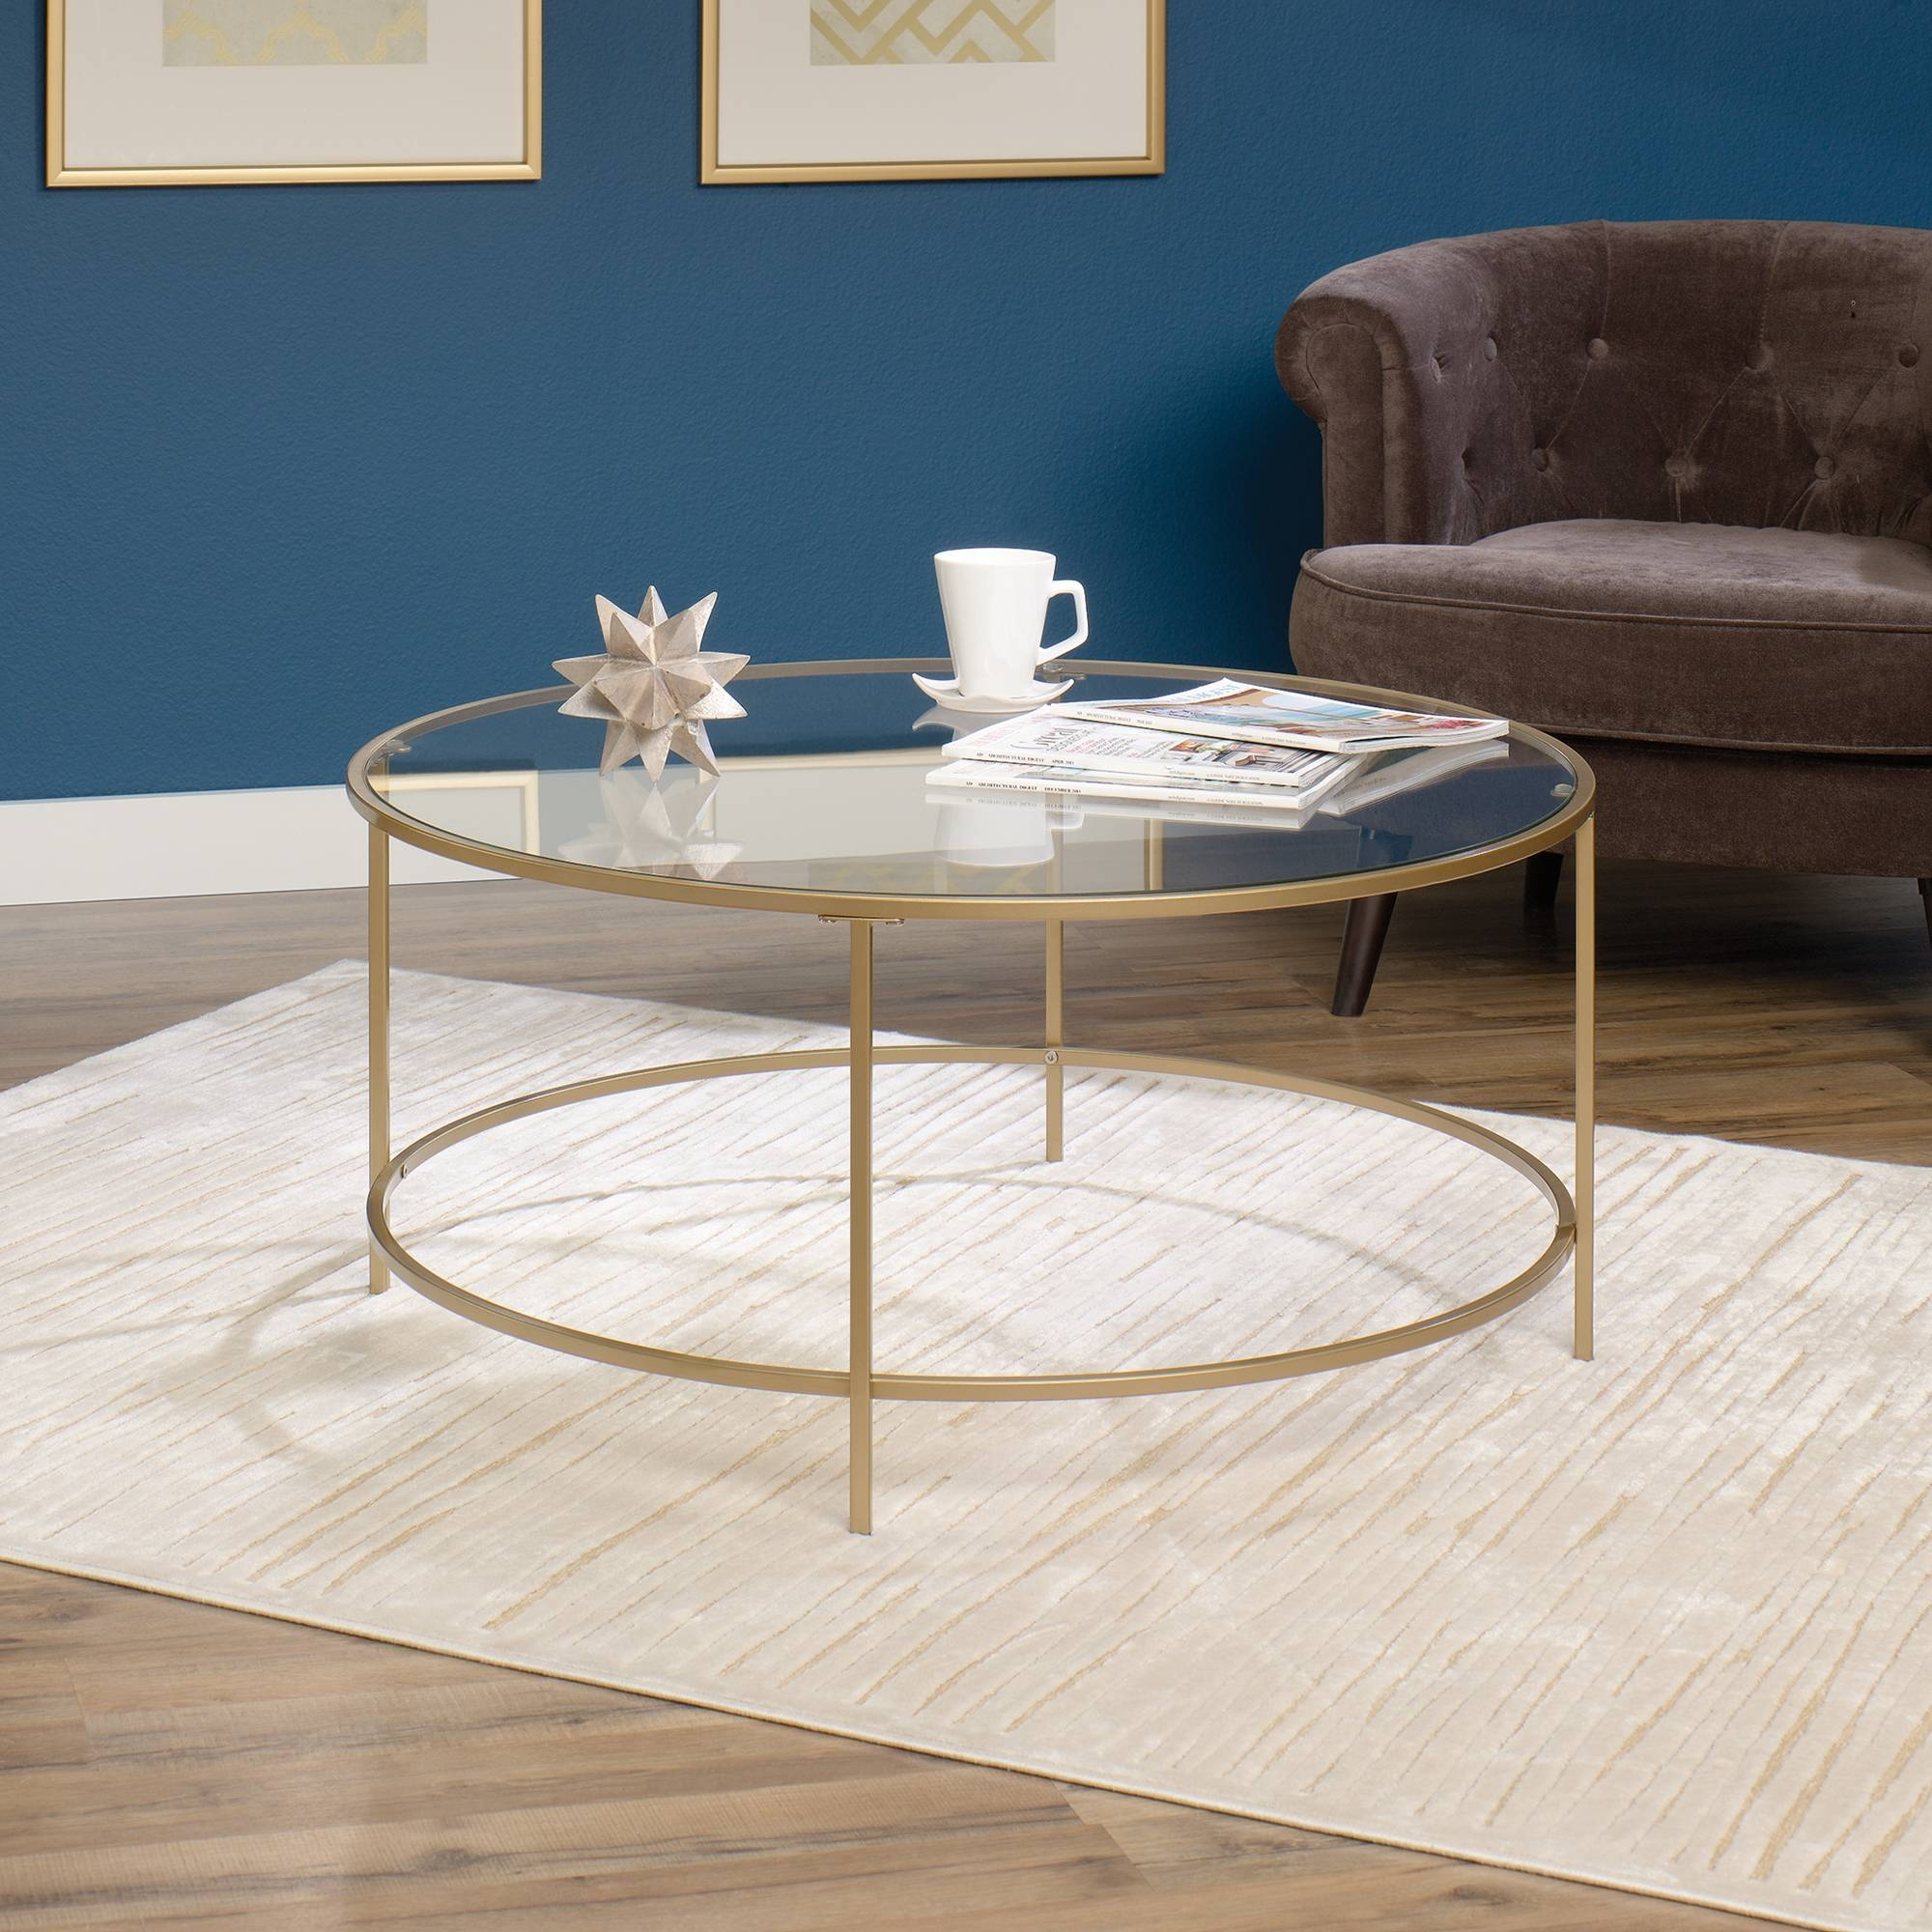 International Lux | Round Coffee Table | 417830 | Sauder inside Glass Gold Coffee Tables (Image 21 of 30)